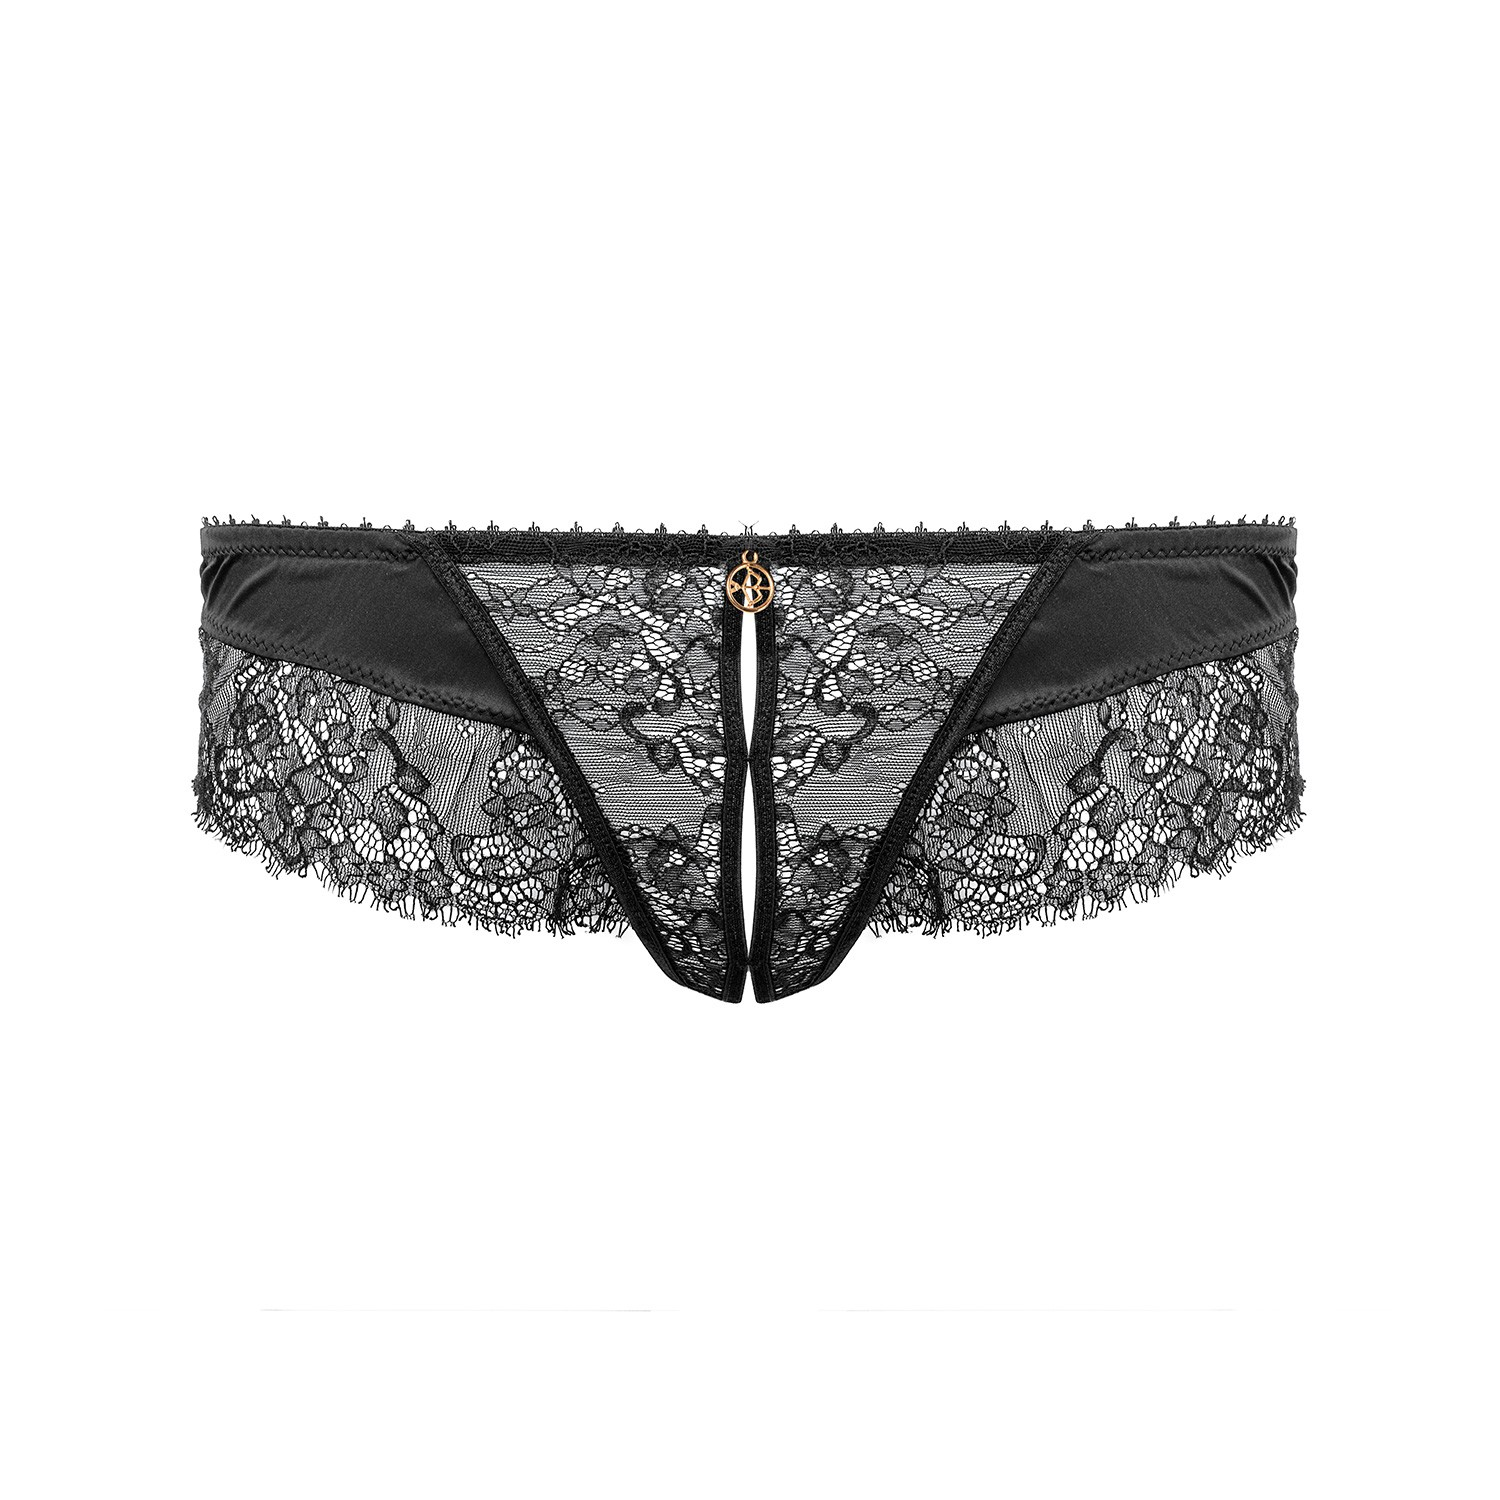 Erregende String Panty Ouvert on Escora in Schwarz